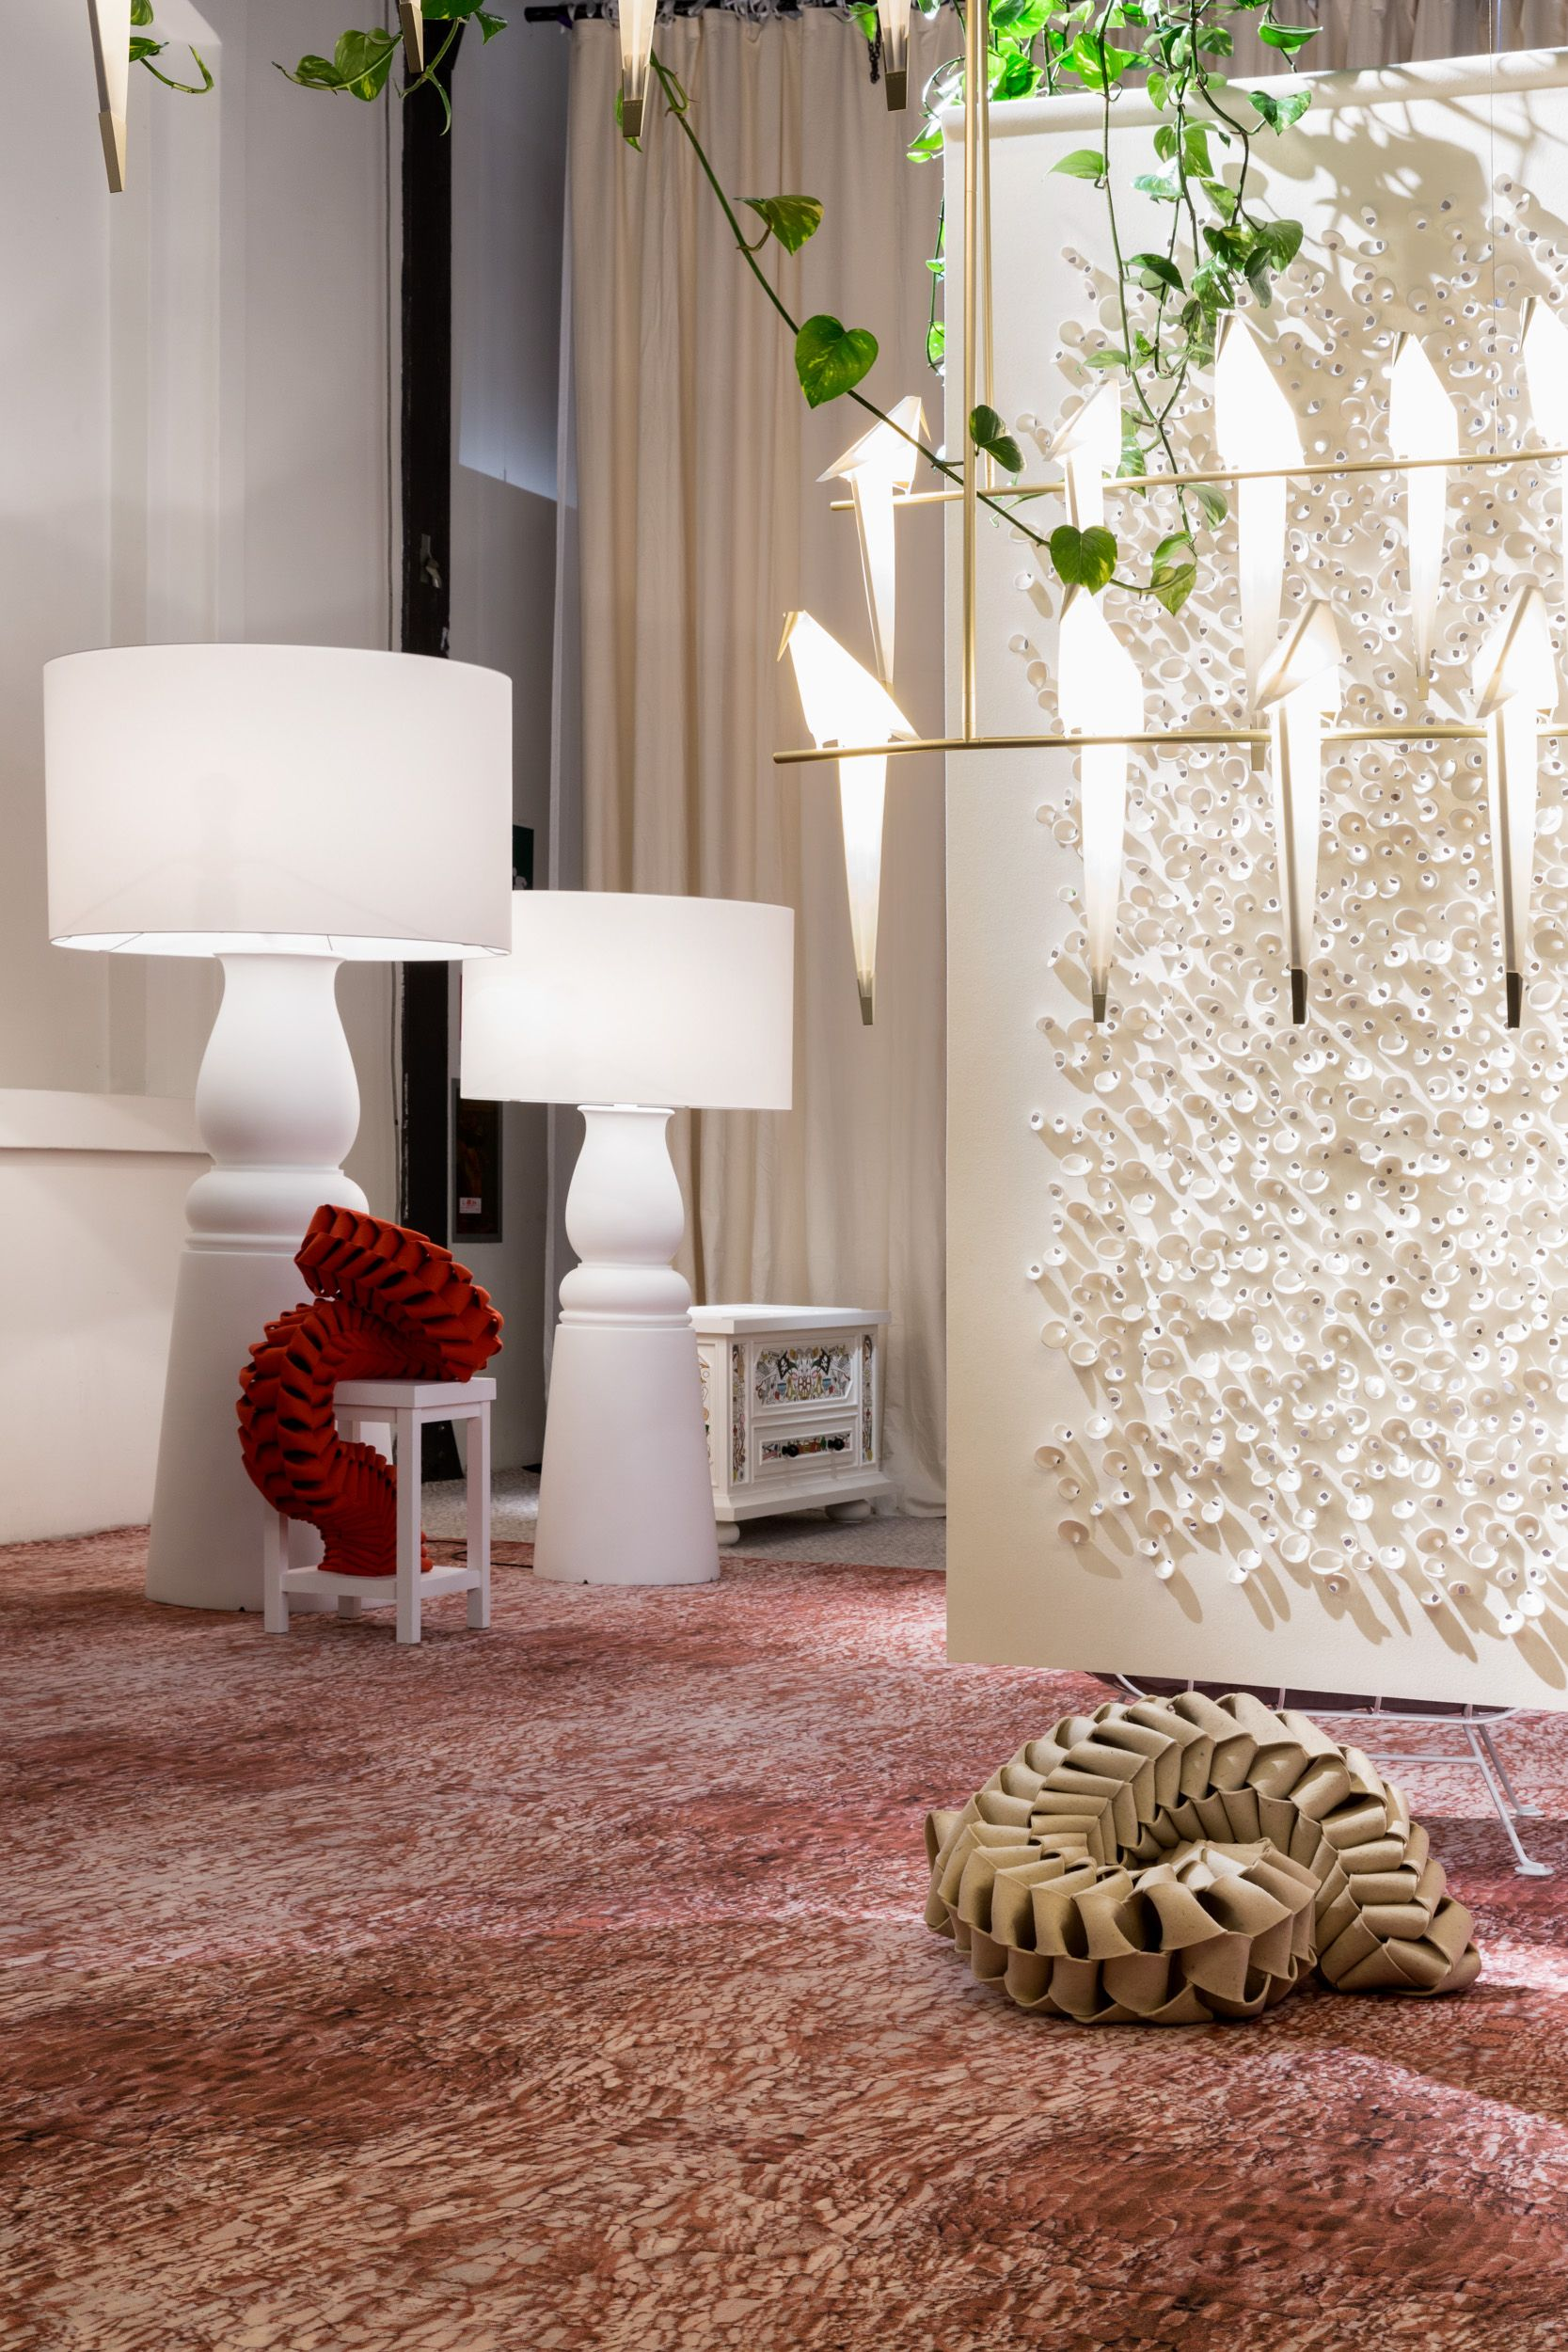 Perch Light Branch Lighted Branches Moooi Dutch Furniture